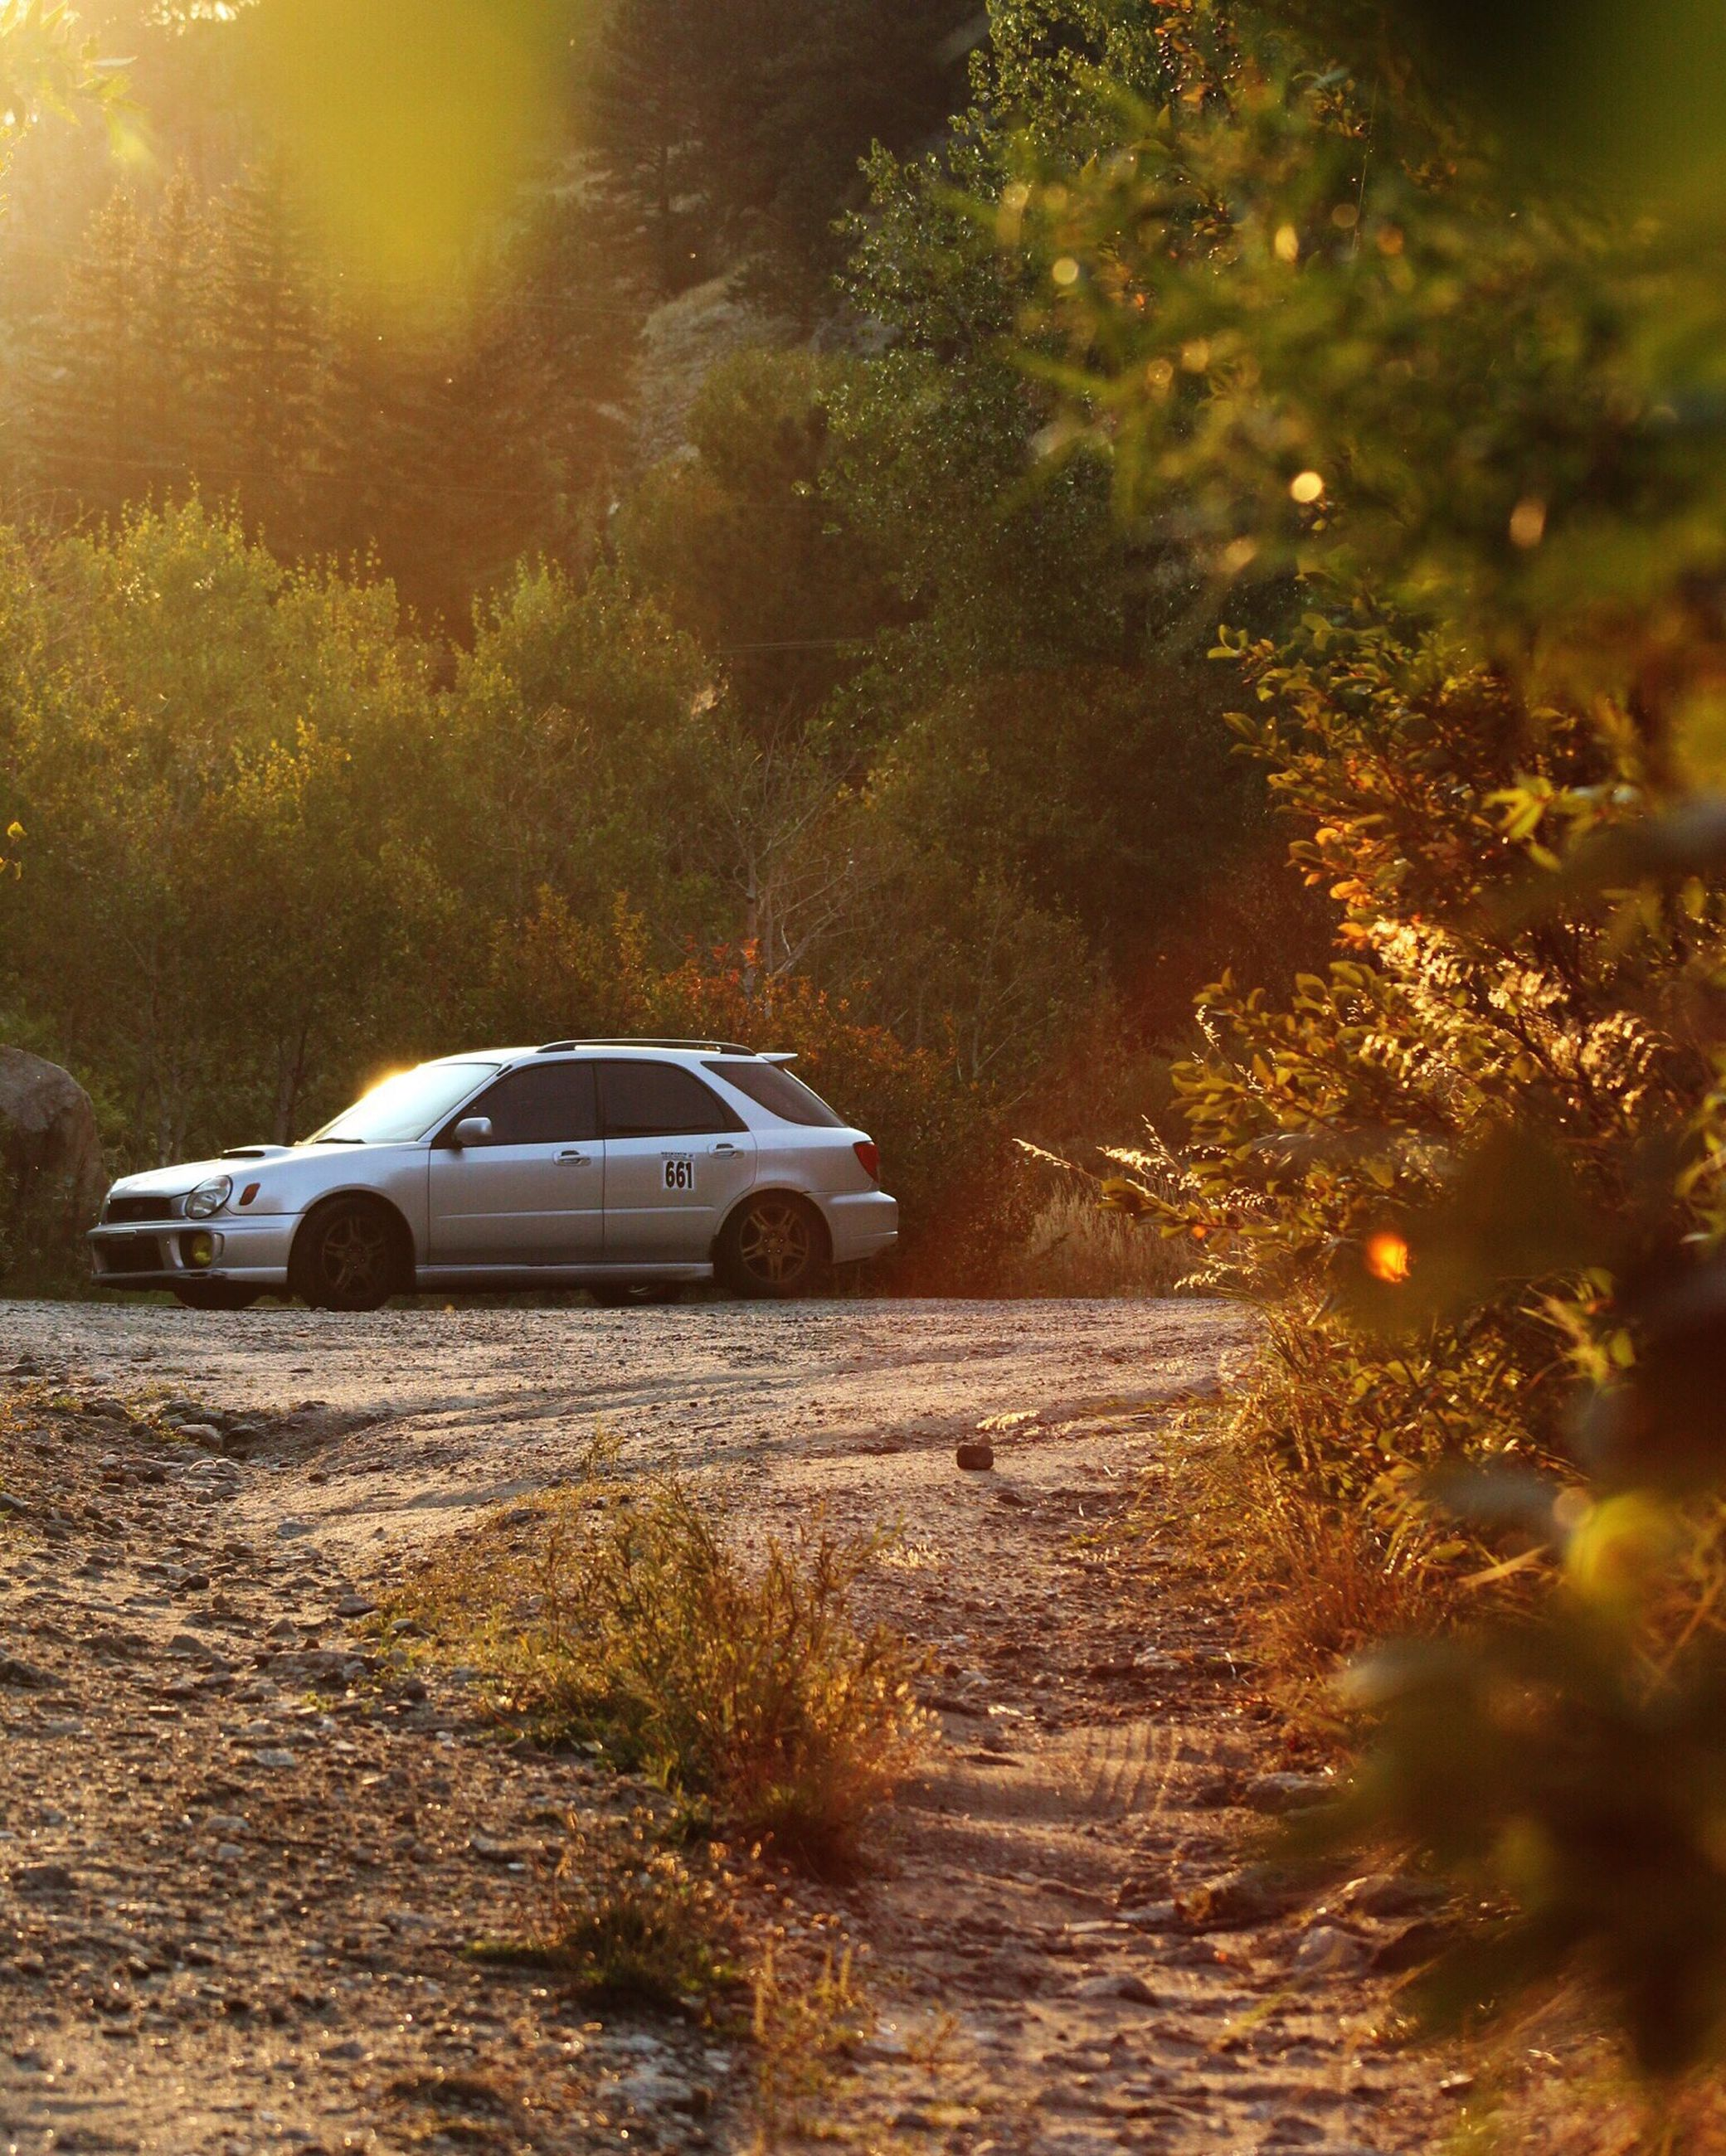 tree, car, transportation, no people, nature, forest, mode of transport, outdoors, beauty in nature, night